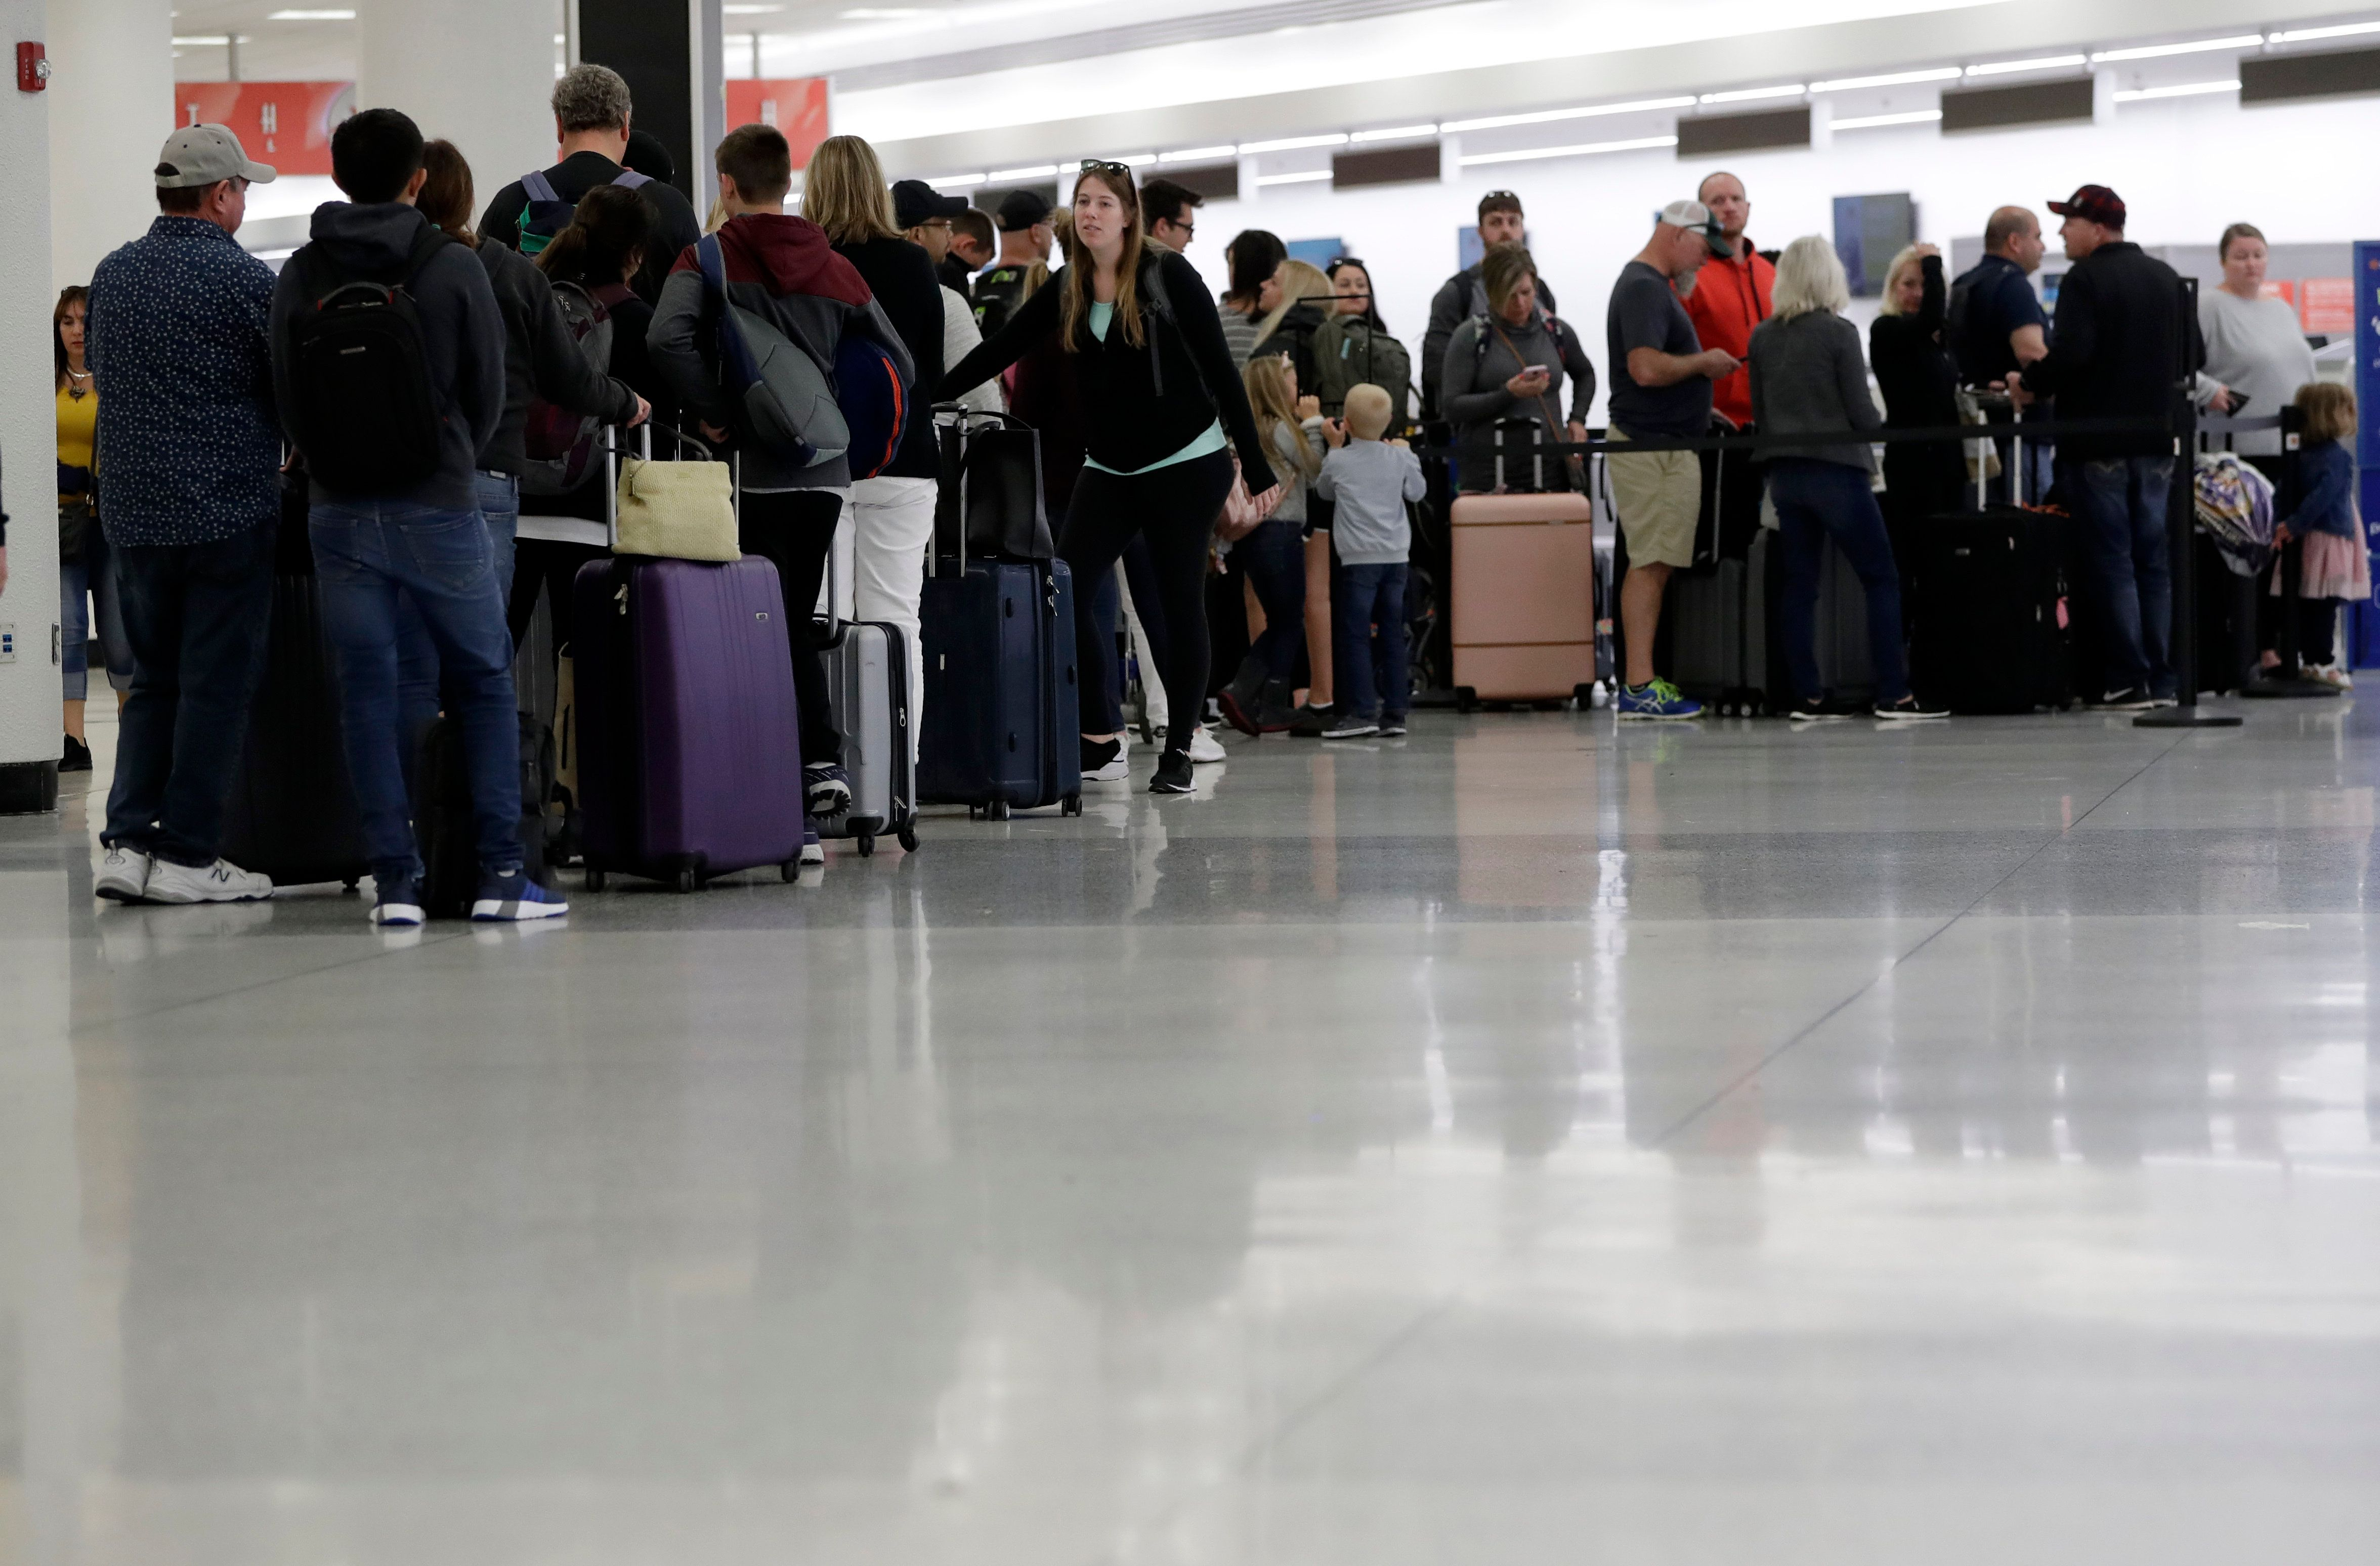 Passengers wait in line at Sun Country Airlines in Terminal G at Miami International Airport, Friday, Jan. 11, 2019, in Miami. The airport is closing Terminal G this weekend as the federal government shutdown stretches toward a fourth week because security screeners have been calling in sick at twice the airport's normal rate. (AP Photo/Lynne Sladky)